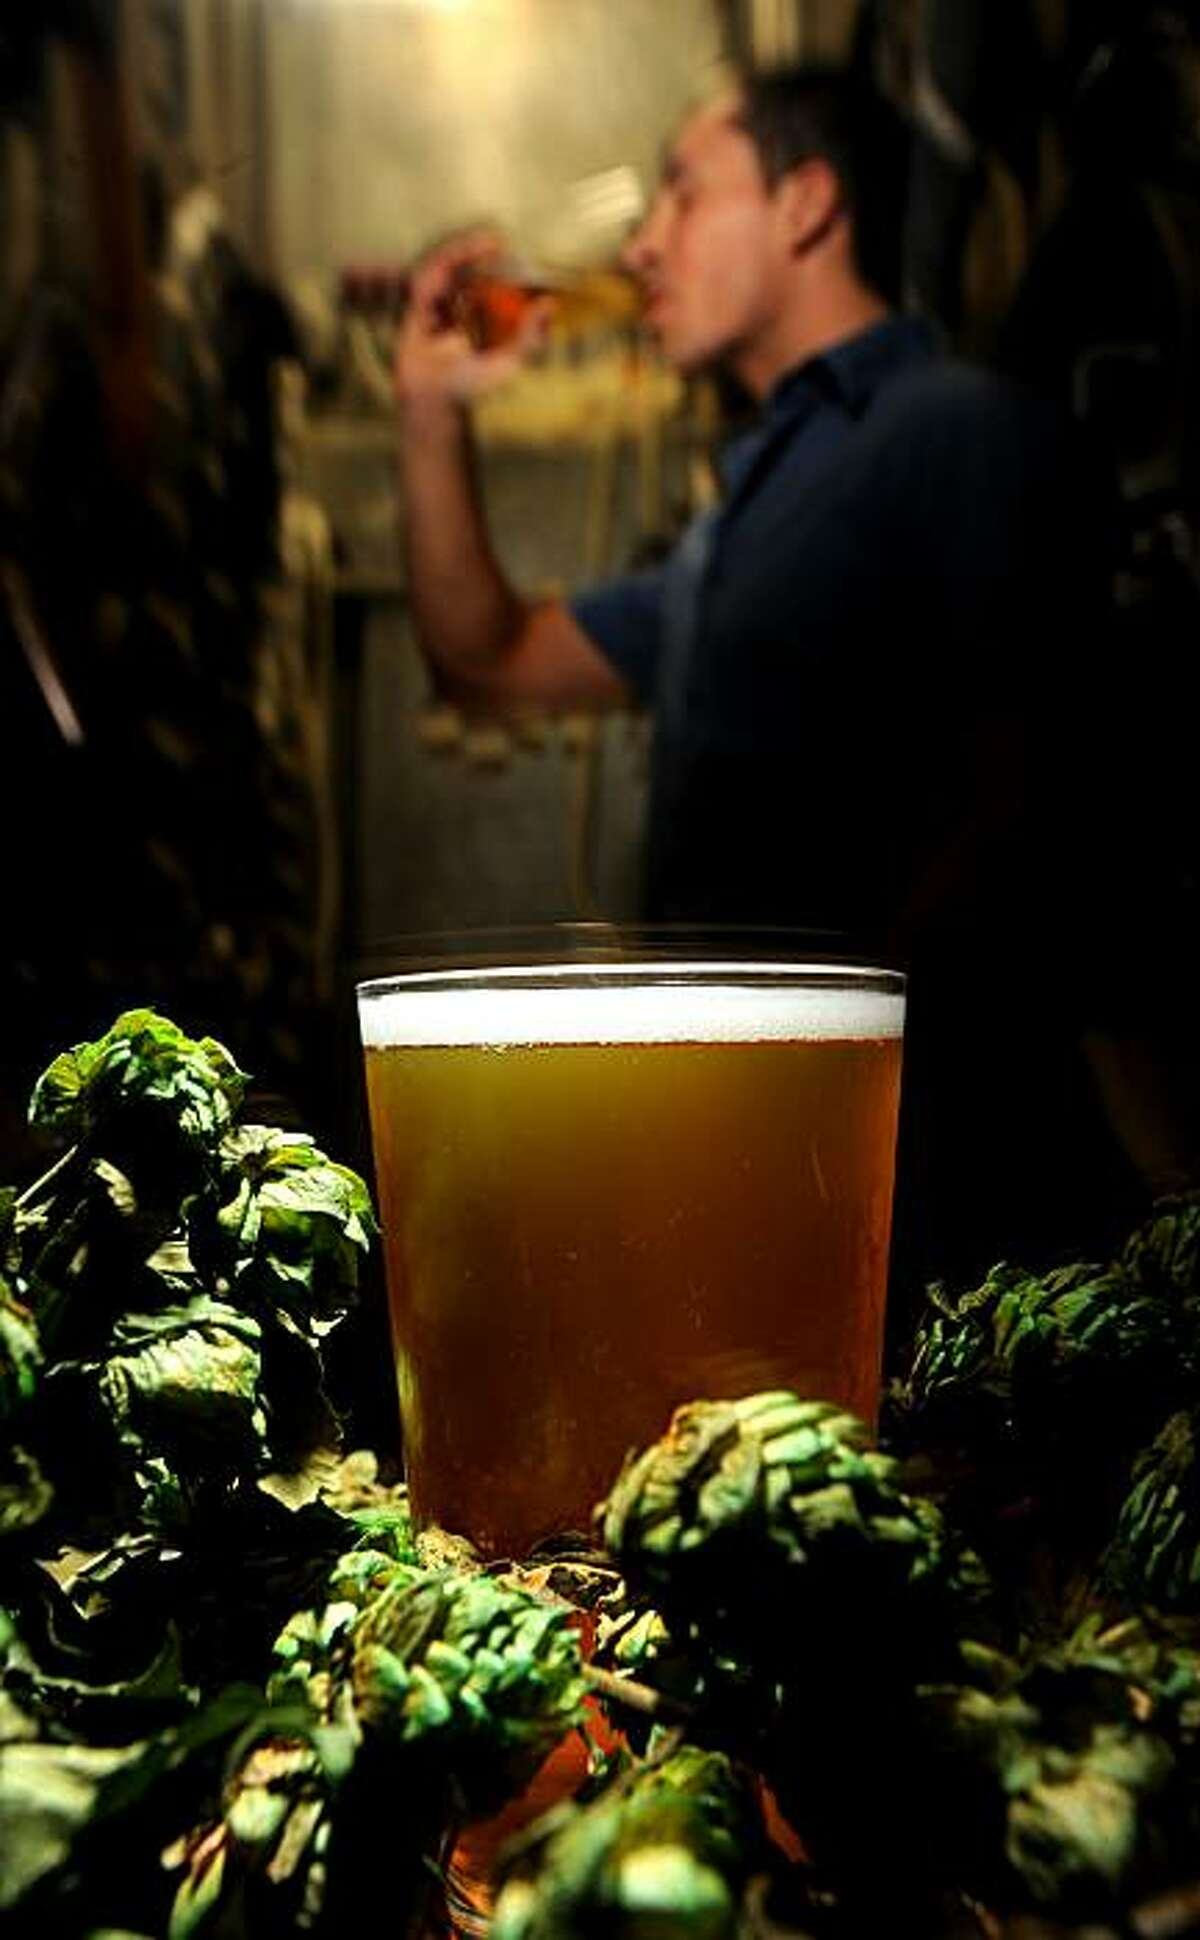 Hops flowers surround a glass of Triple Rock Brewery's Sorachi Ace on Thursday, Oct. 14, 2010, in Berkeley, Calif. In the background, bar manager Jesse Sarinana drinks a glass of the brew. EDITOR: THESE ARE ORNAMENTAL HOPS, NOT THE ACTUAL VARIETY USED TO MAKE THIS BEER.